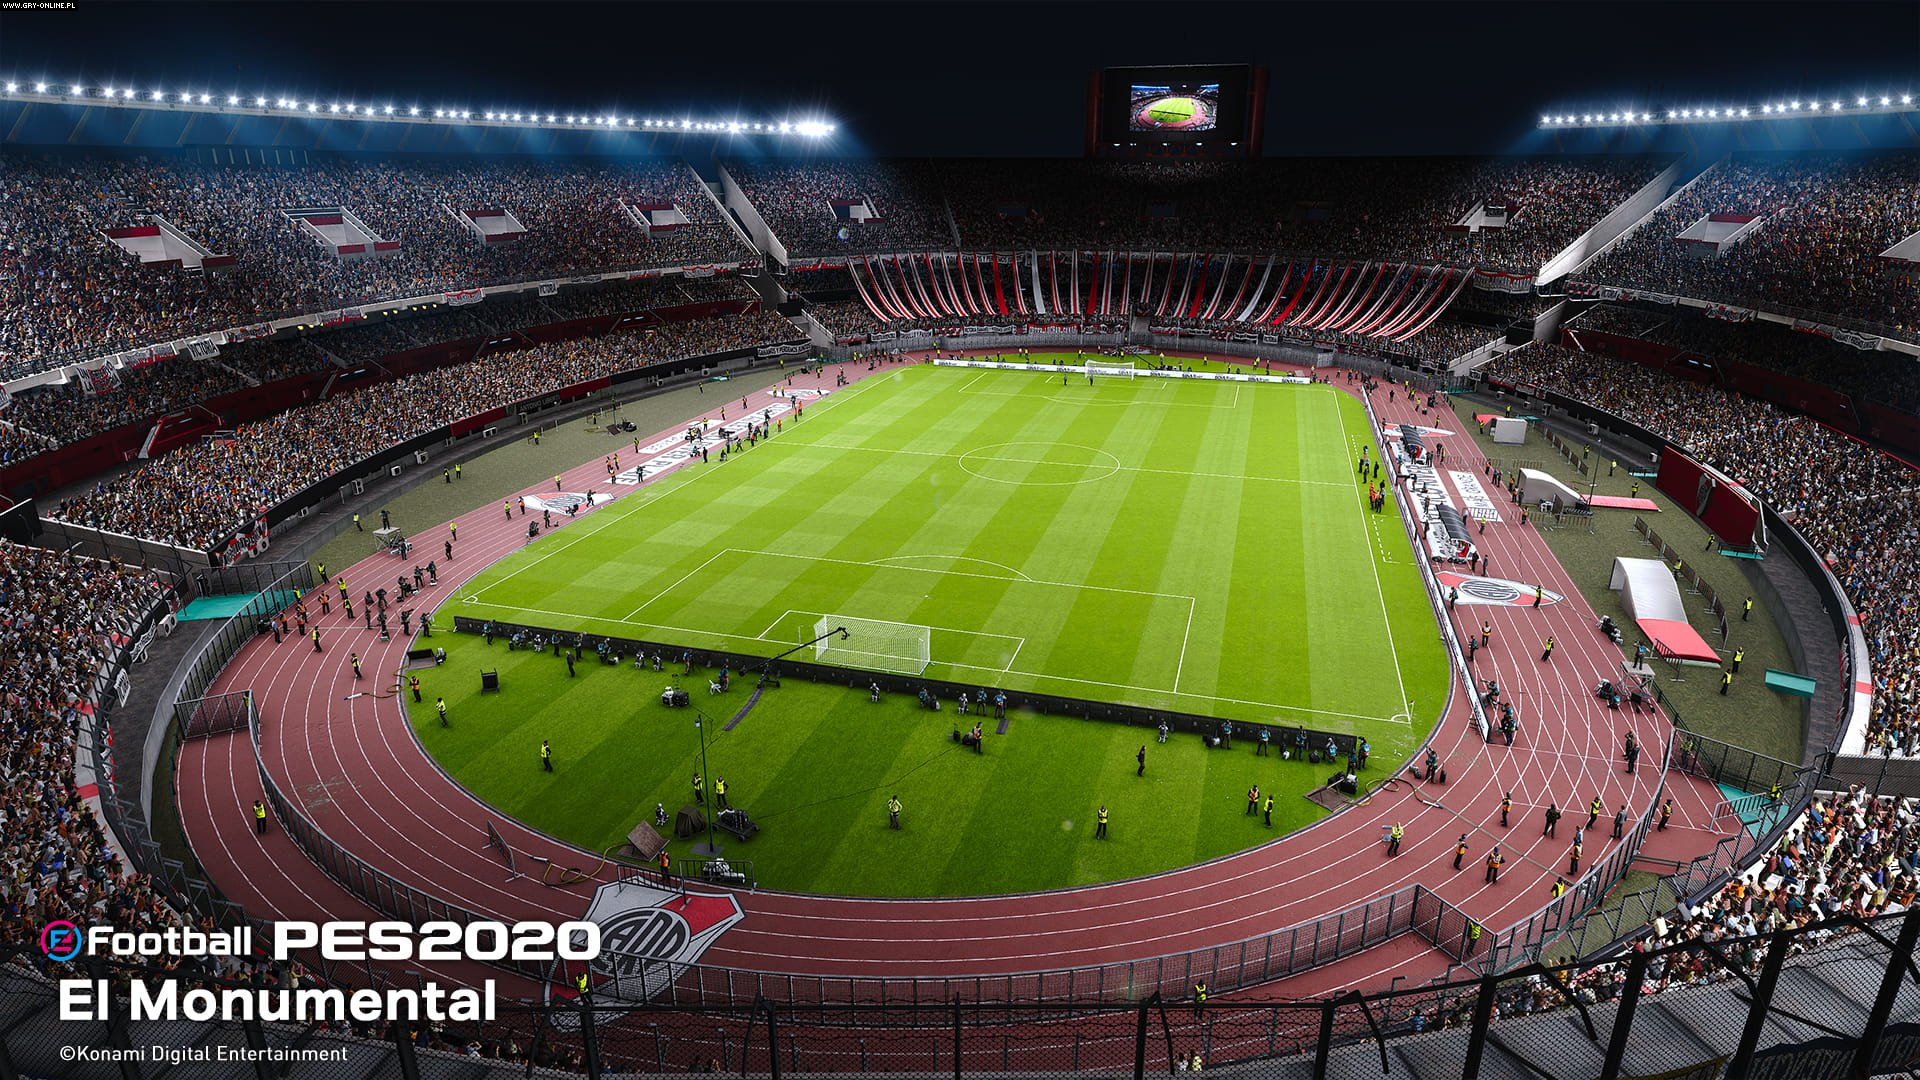 eFootball PES 2020 PC, PS4, XONE Games Image 2/25, Konami